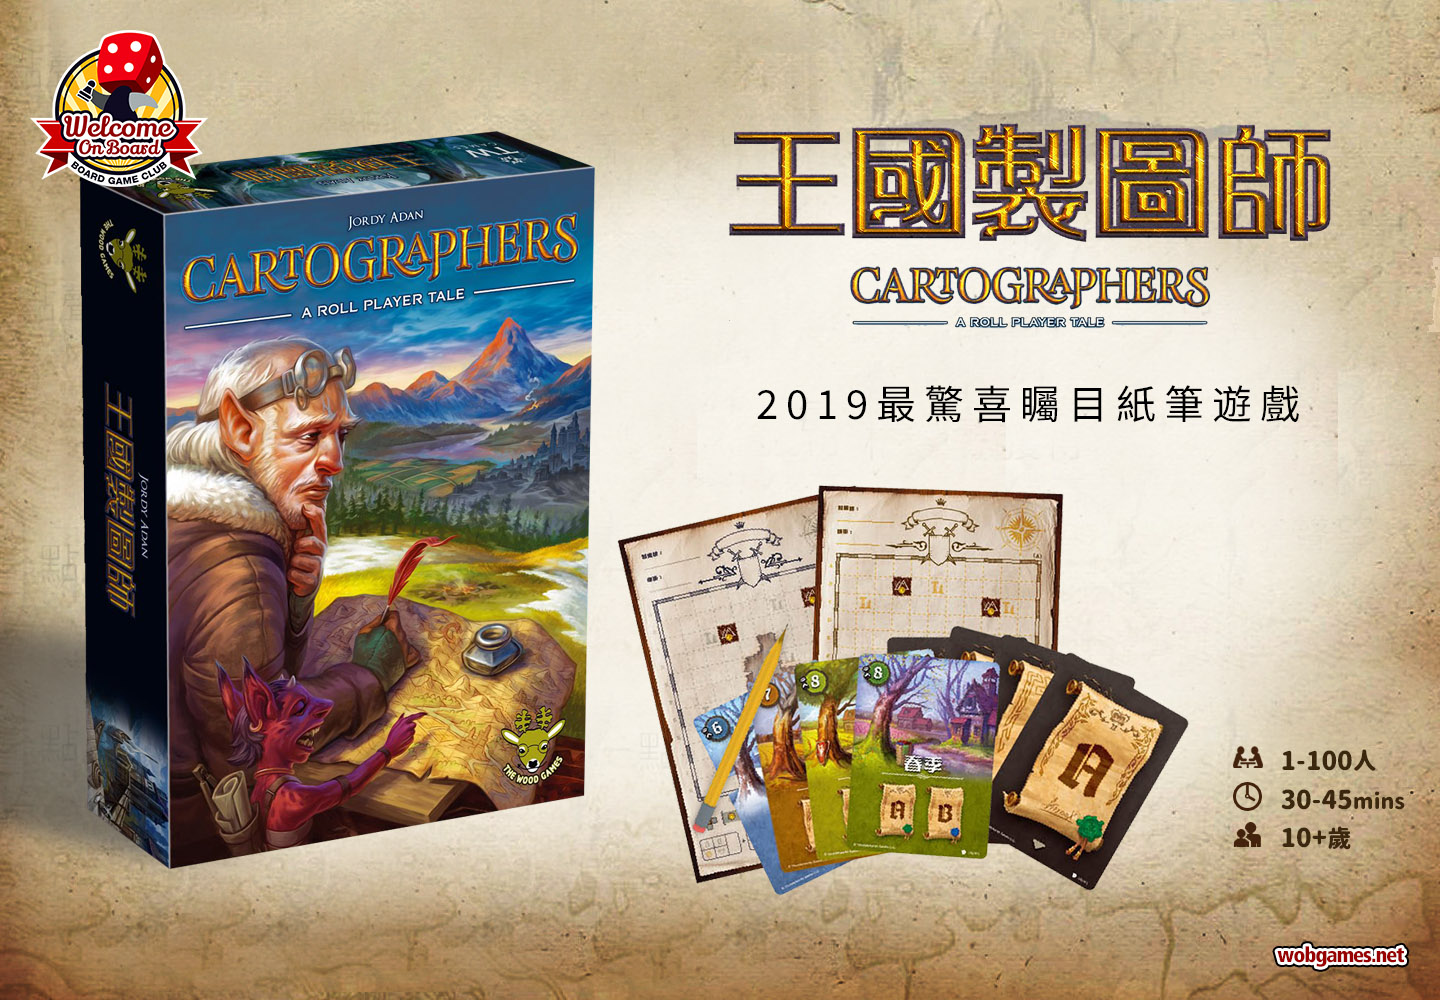 最驚喜矚目紙筆遊戲 Cartographers: A Roll Player Tale 王國製圖師 | 香港桌遊天地 Welcome on Board Game Club Hong Kong